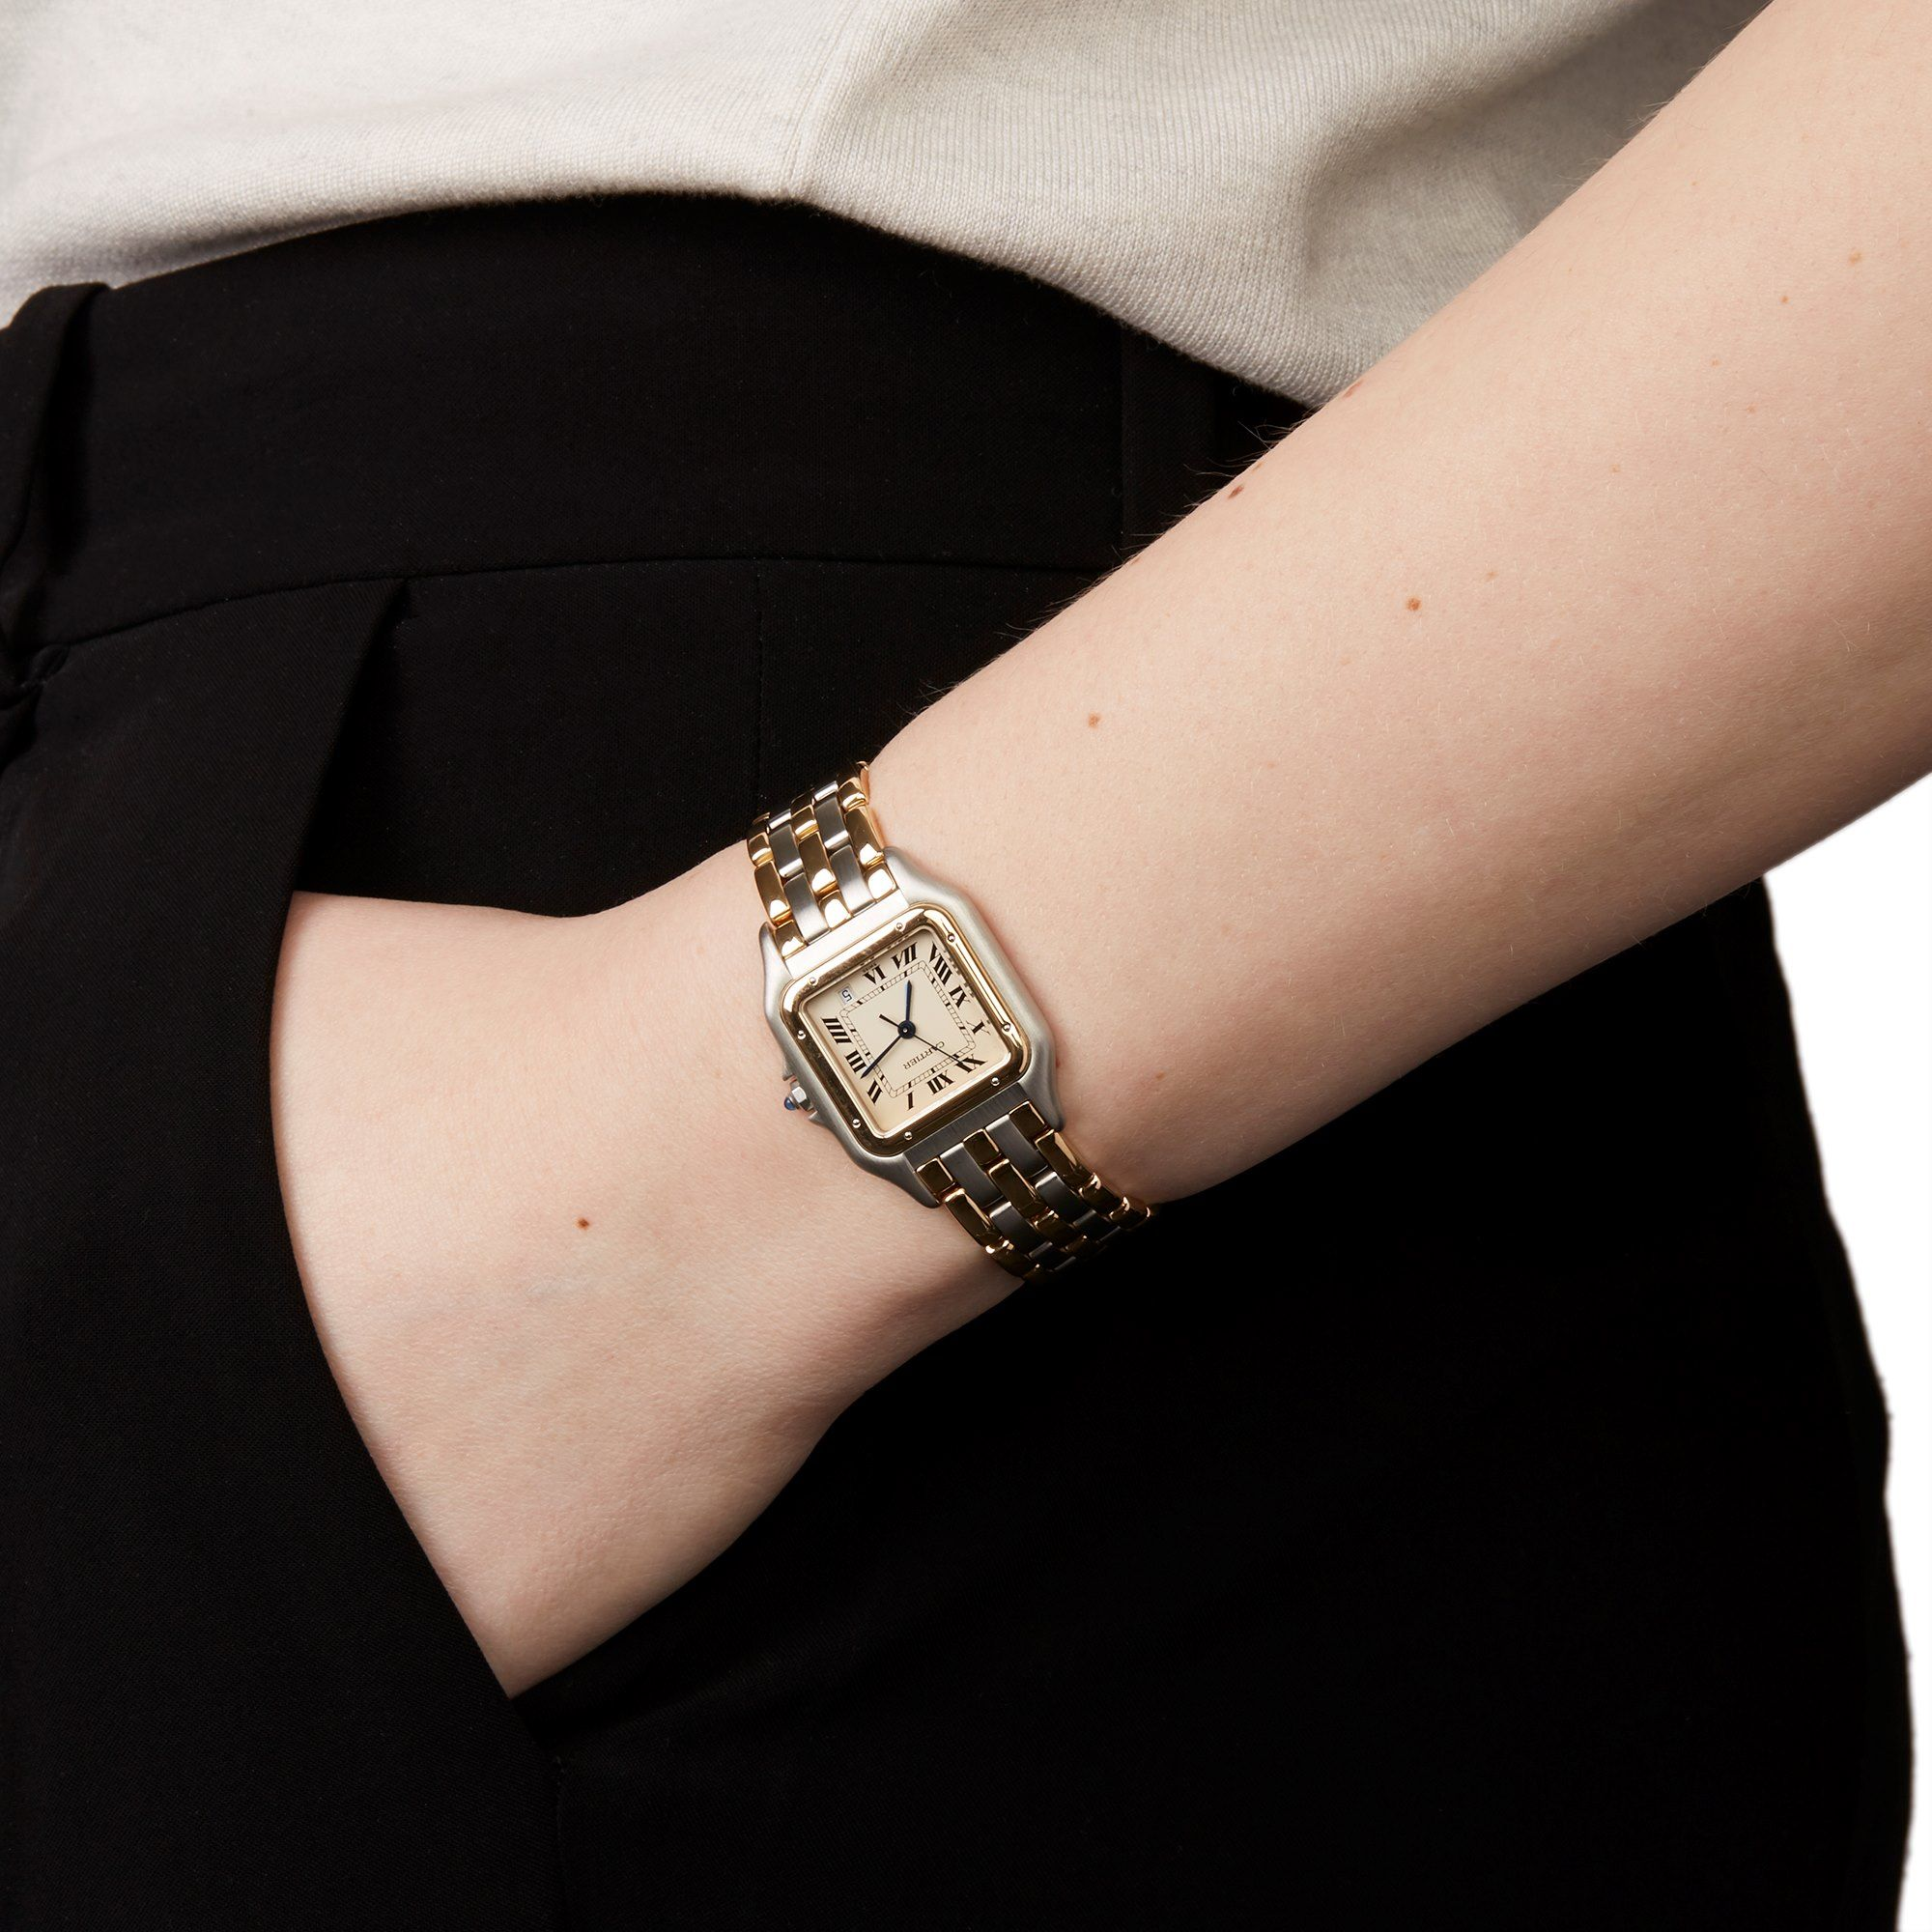 Cartier Panthere W25028b6 1990 S W6086 Second Hand Watches Xupes In 2020 Cartier Watches Women Second Hand Watches Fashion Watches